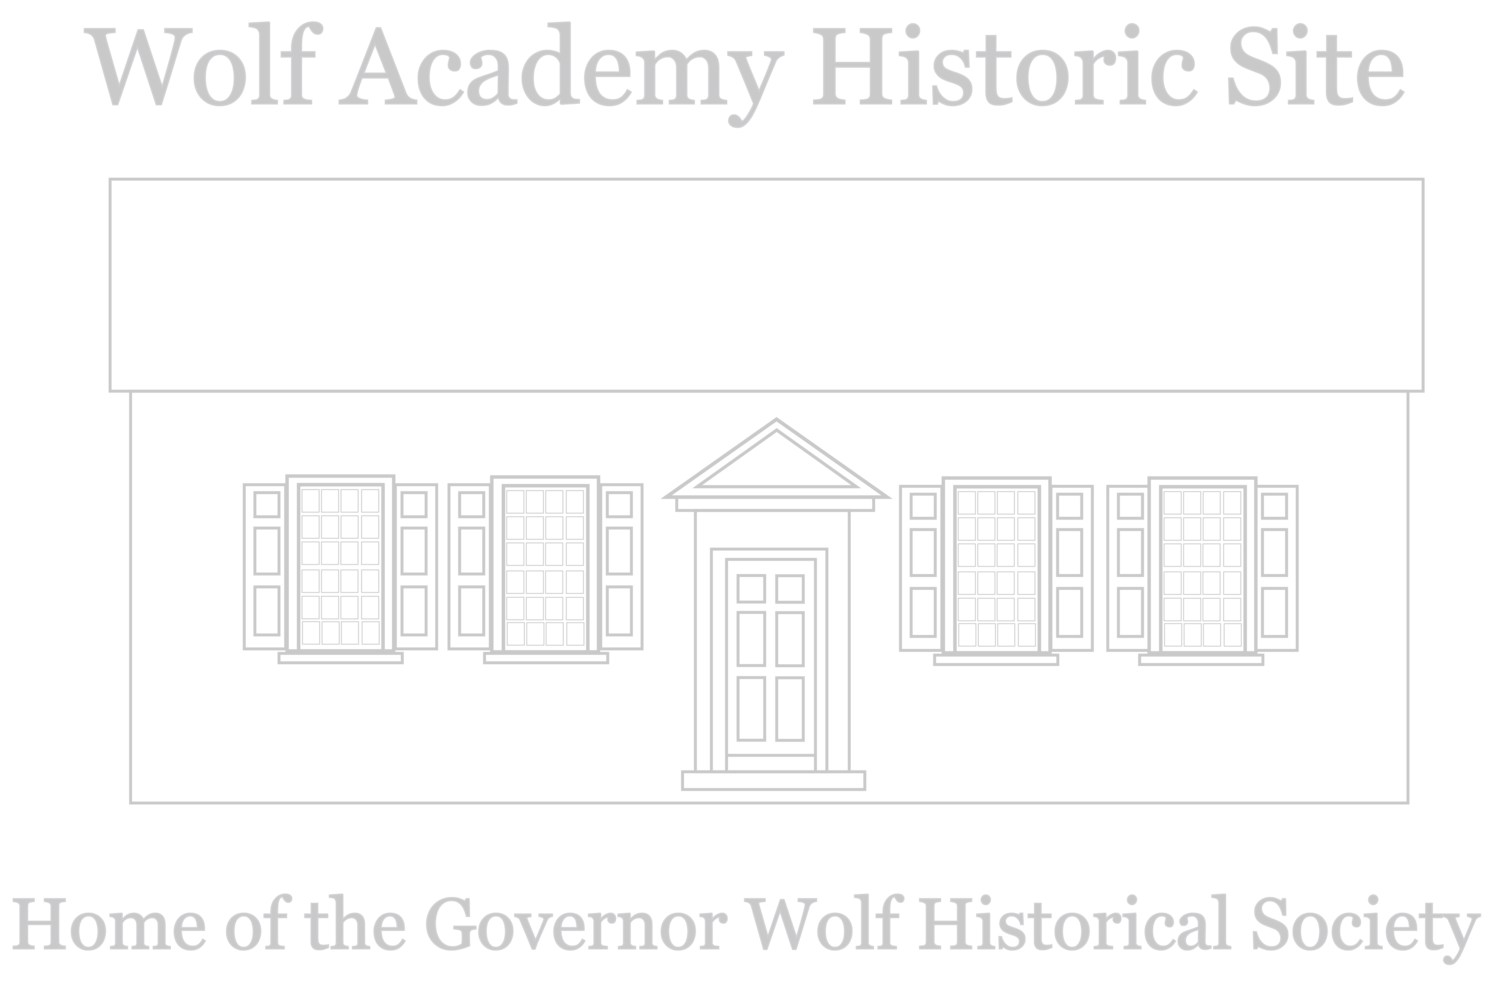 Wolf Academy Historical Site